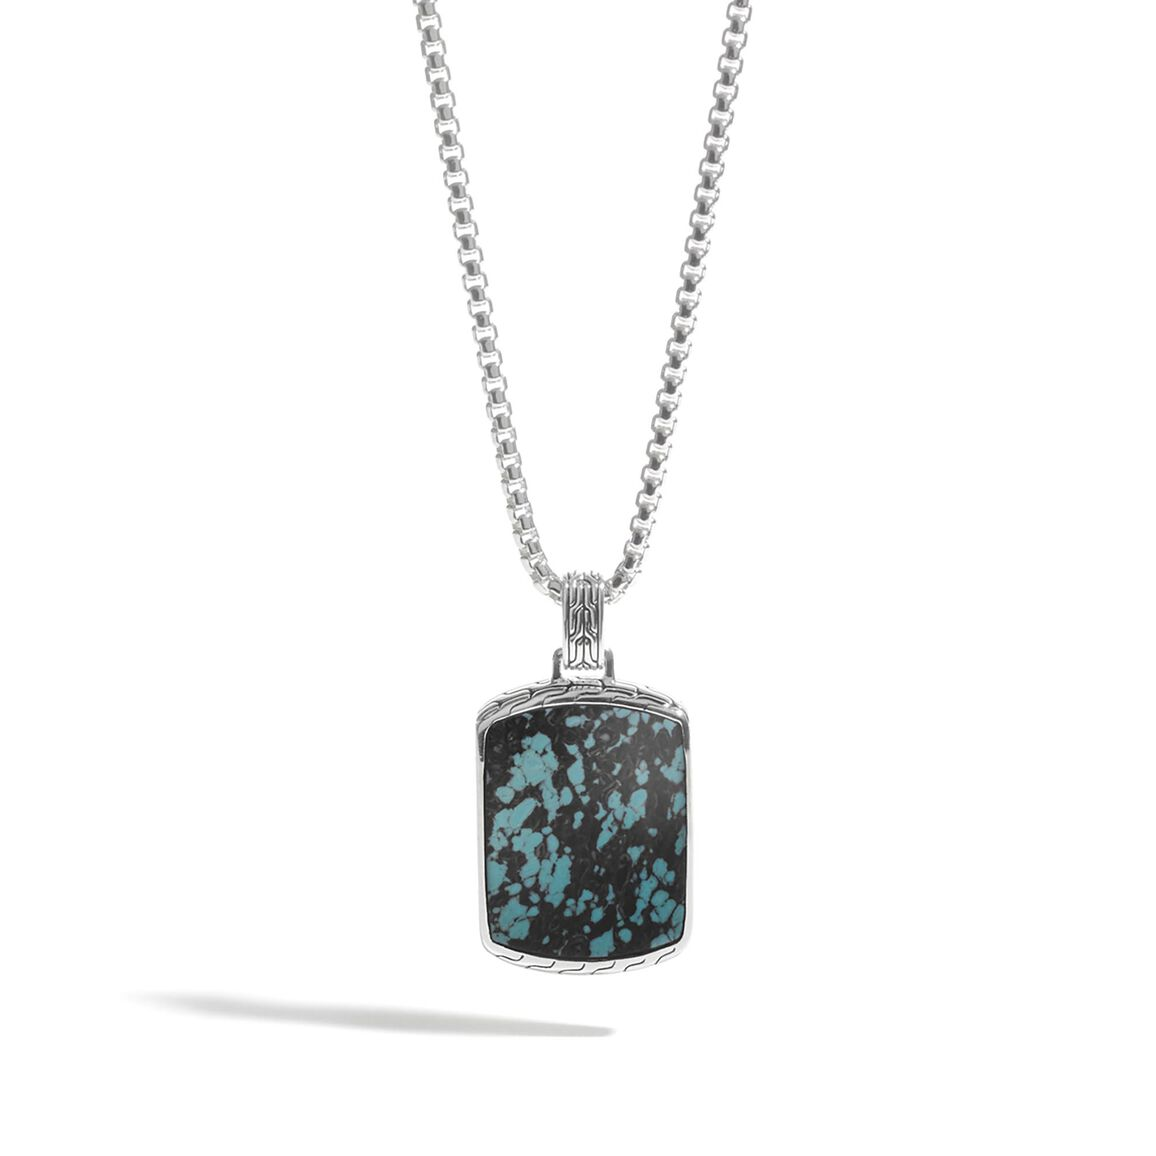 Classic Chain Dog Tag Necklace, Silver with Gemstone